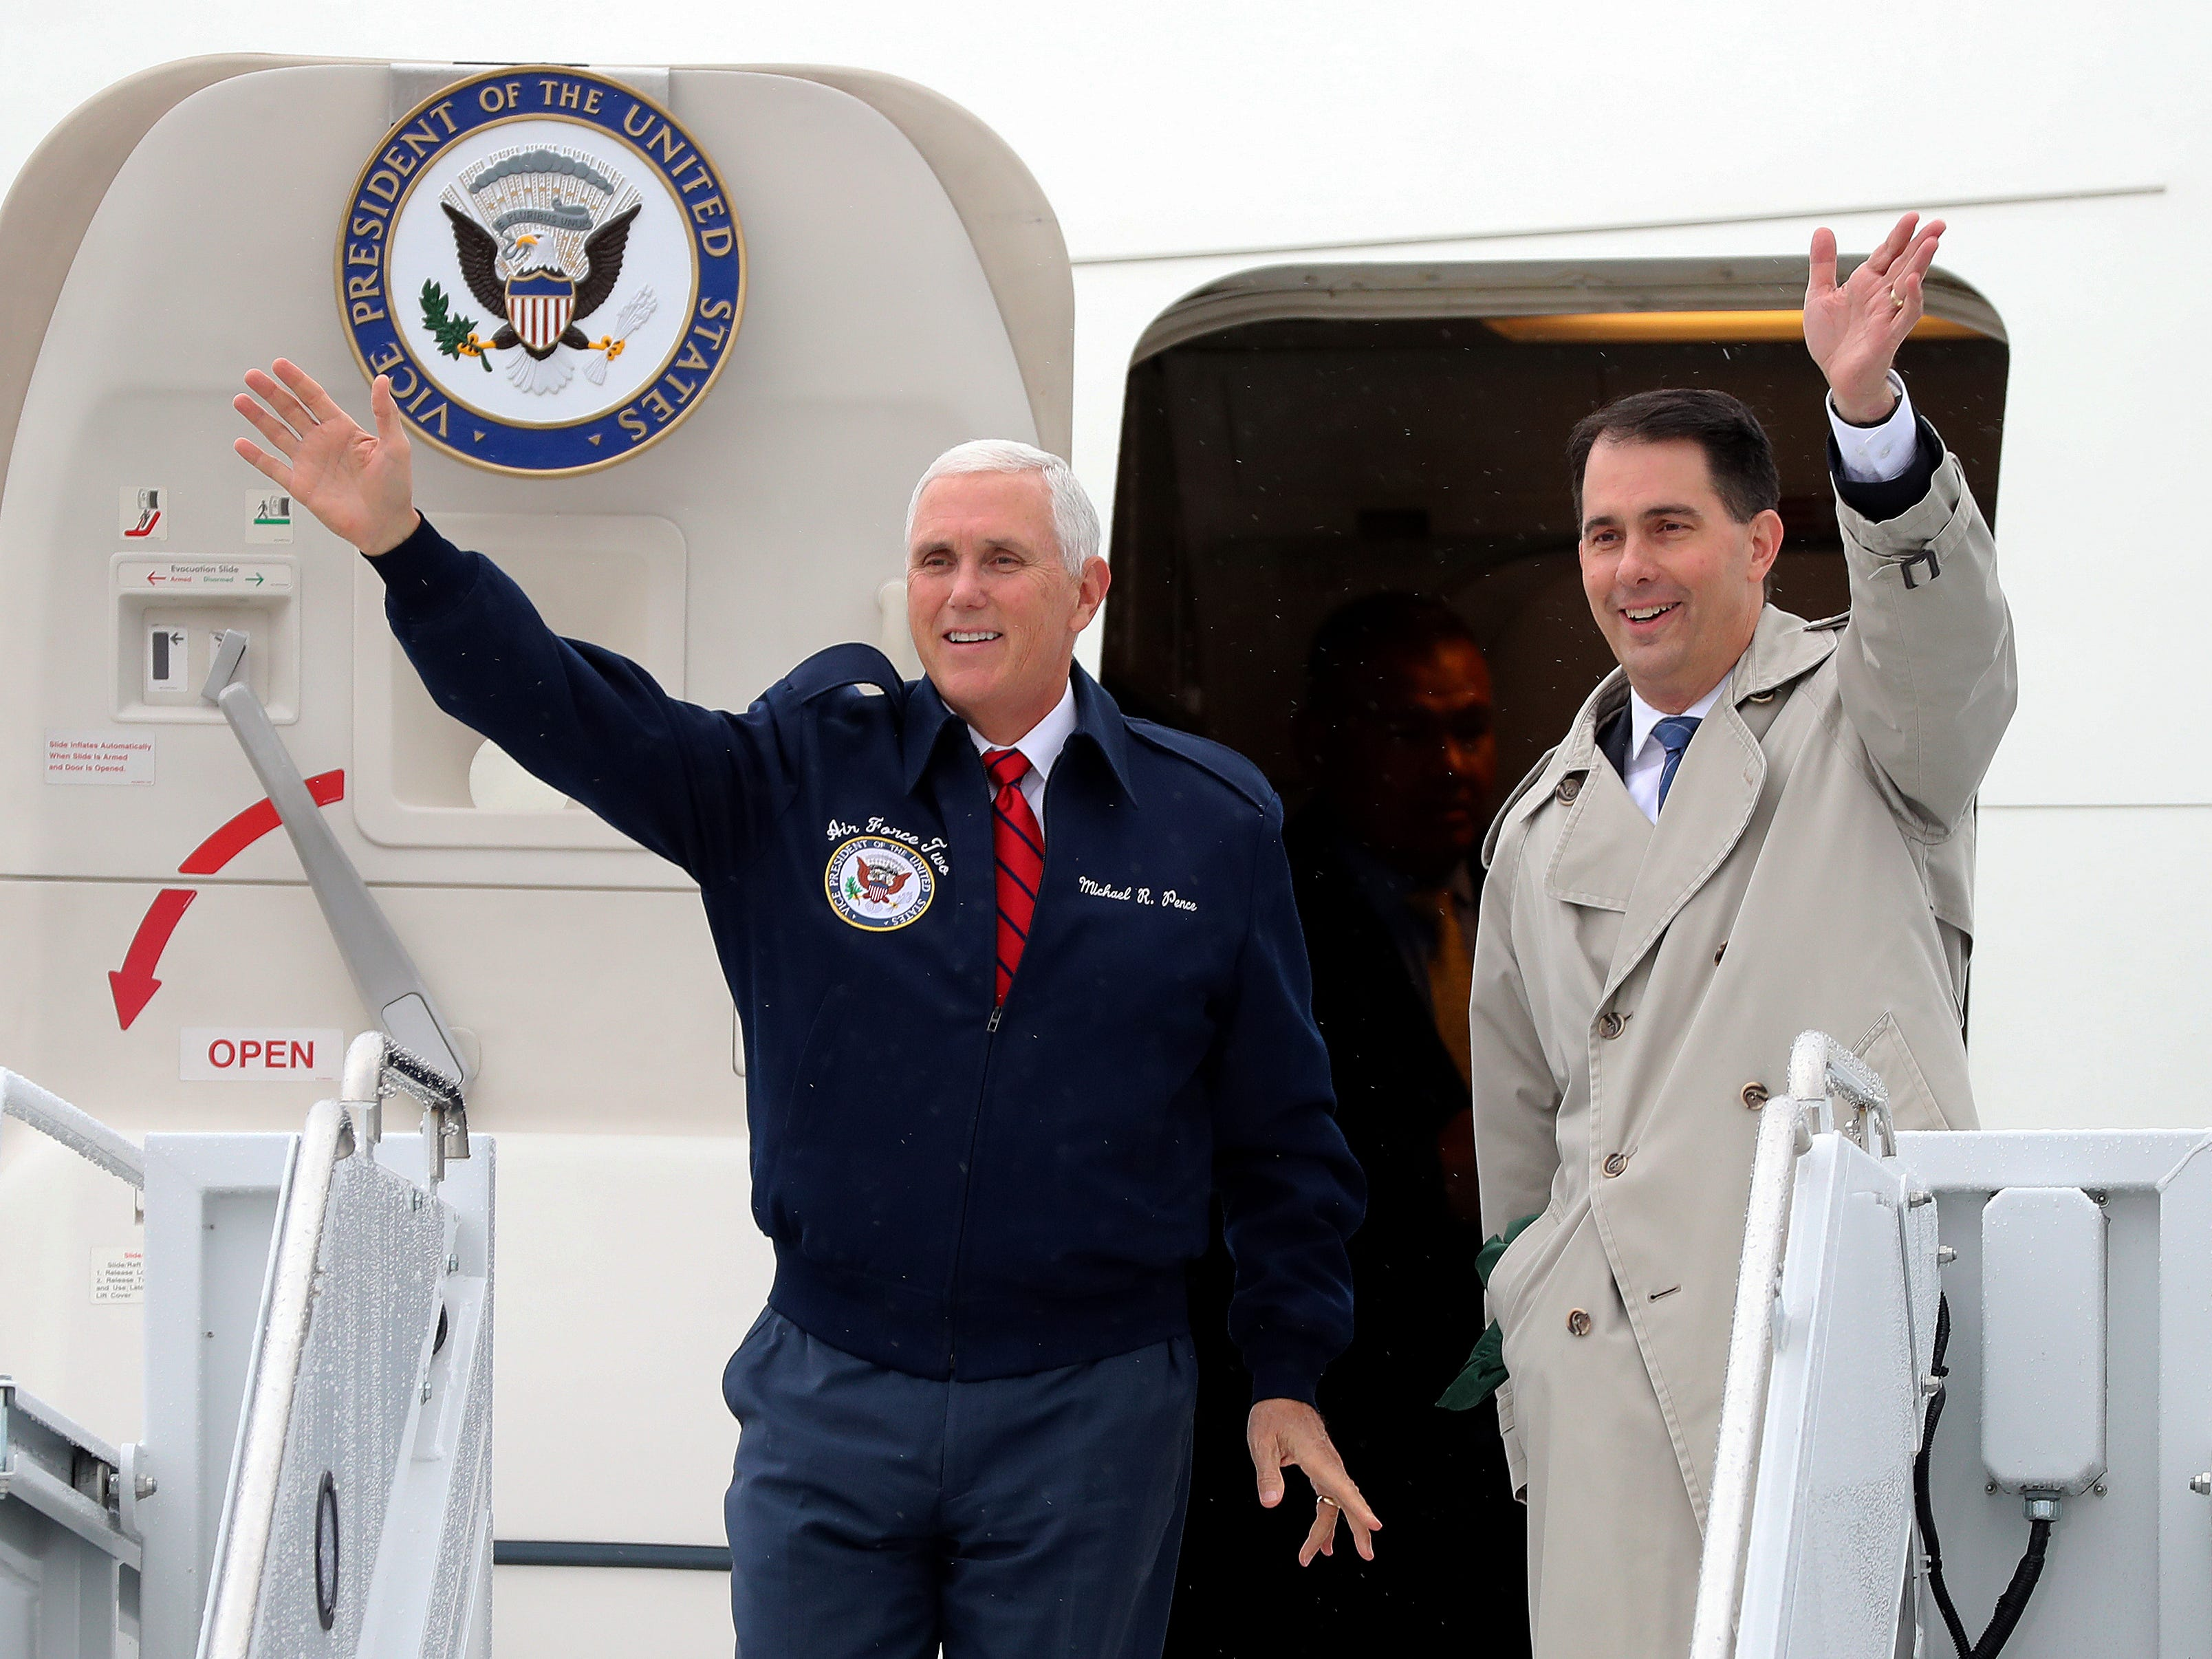 Vice President Mike Pence (left) arrives at Green Bay's Austin Straubel International Airport with Gov. Scott Walker on Wednesday, Oct. 10, 2018.